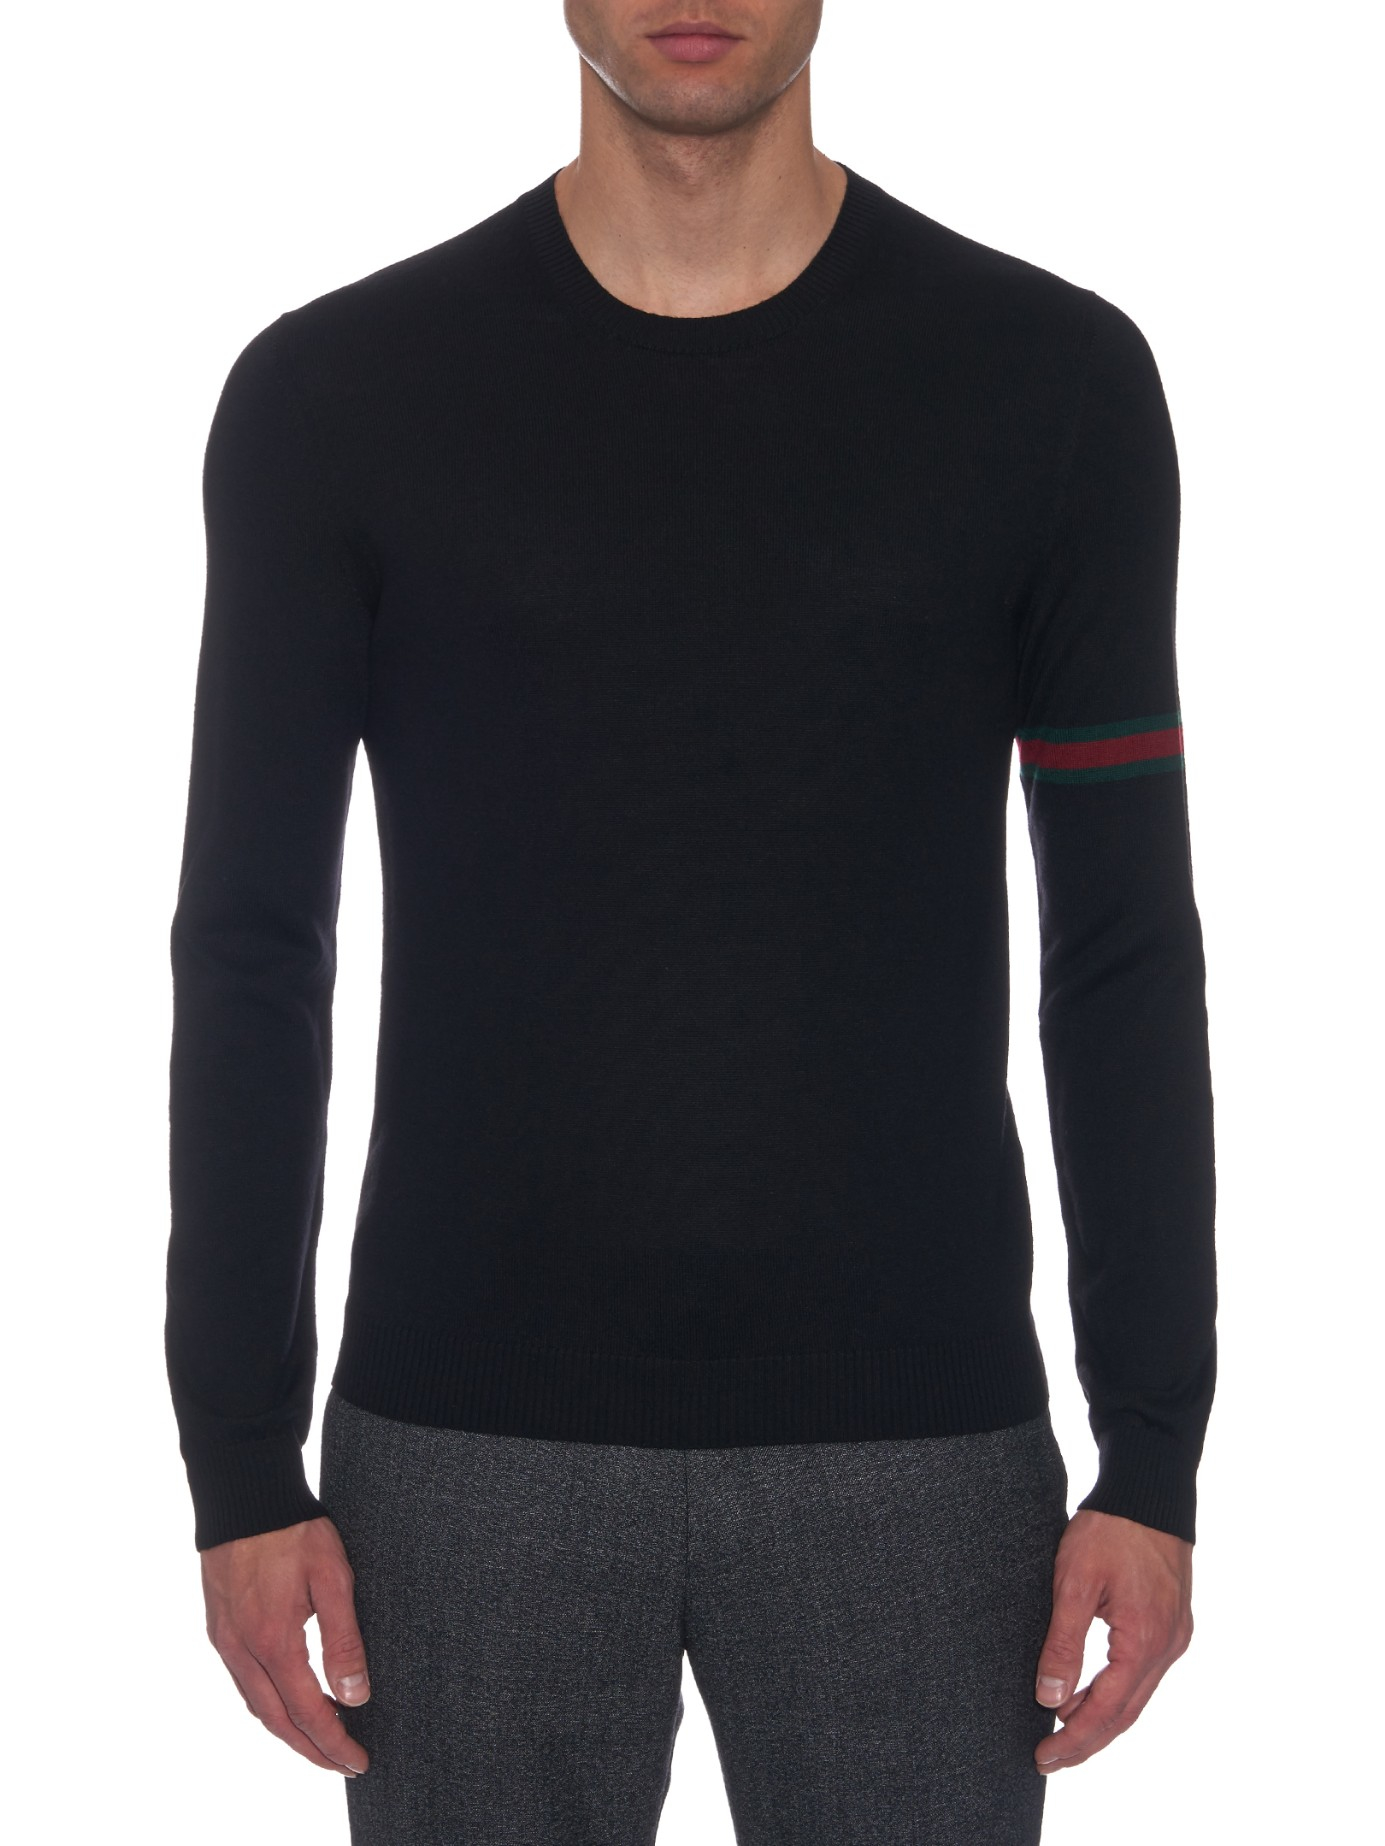 542d2f8c09eb0 Lyst - Gucci Crew-Neck Wool-Knit Sweater in Black for Men